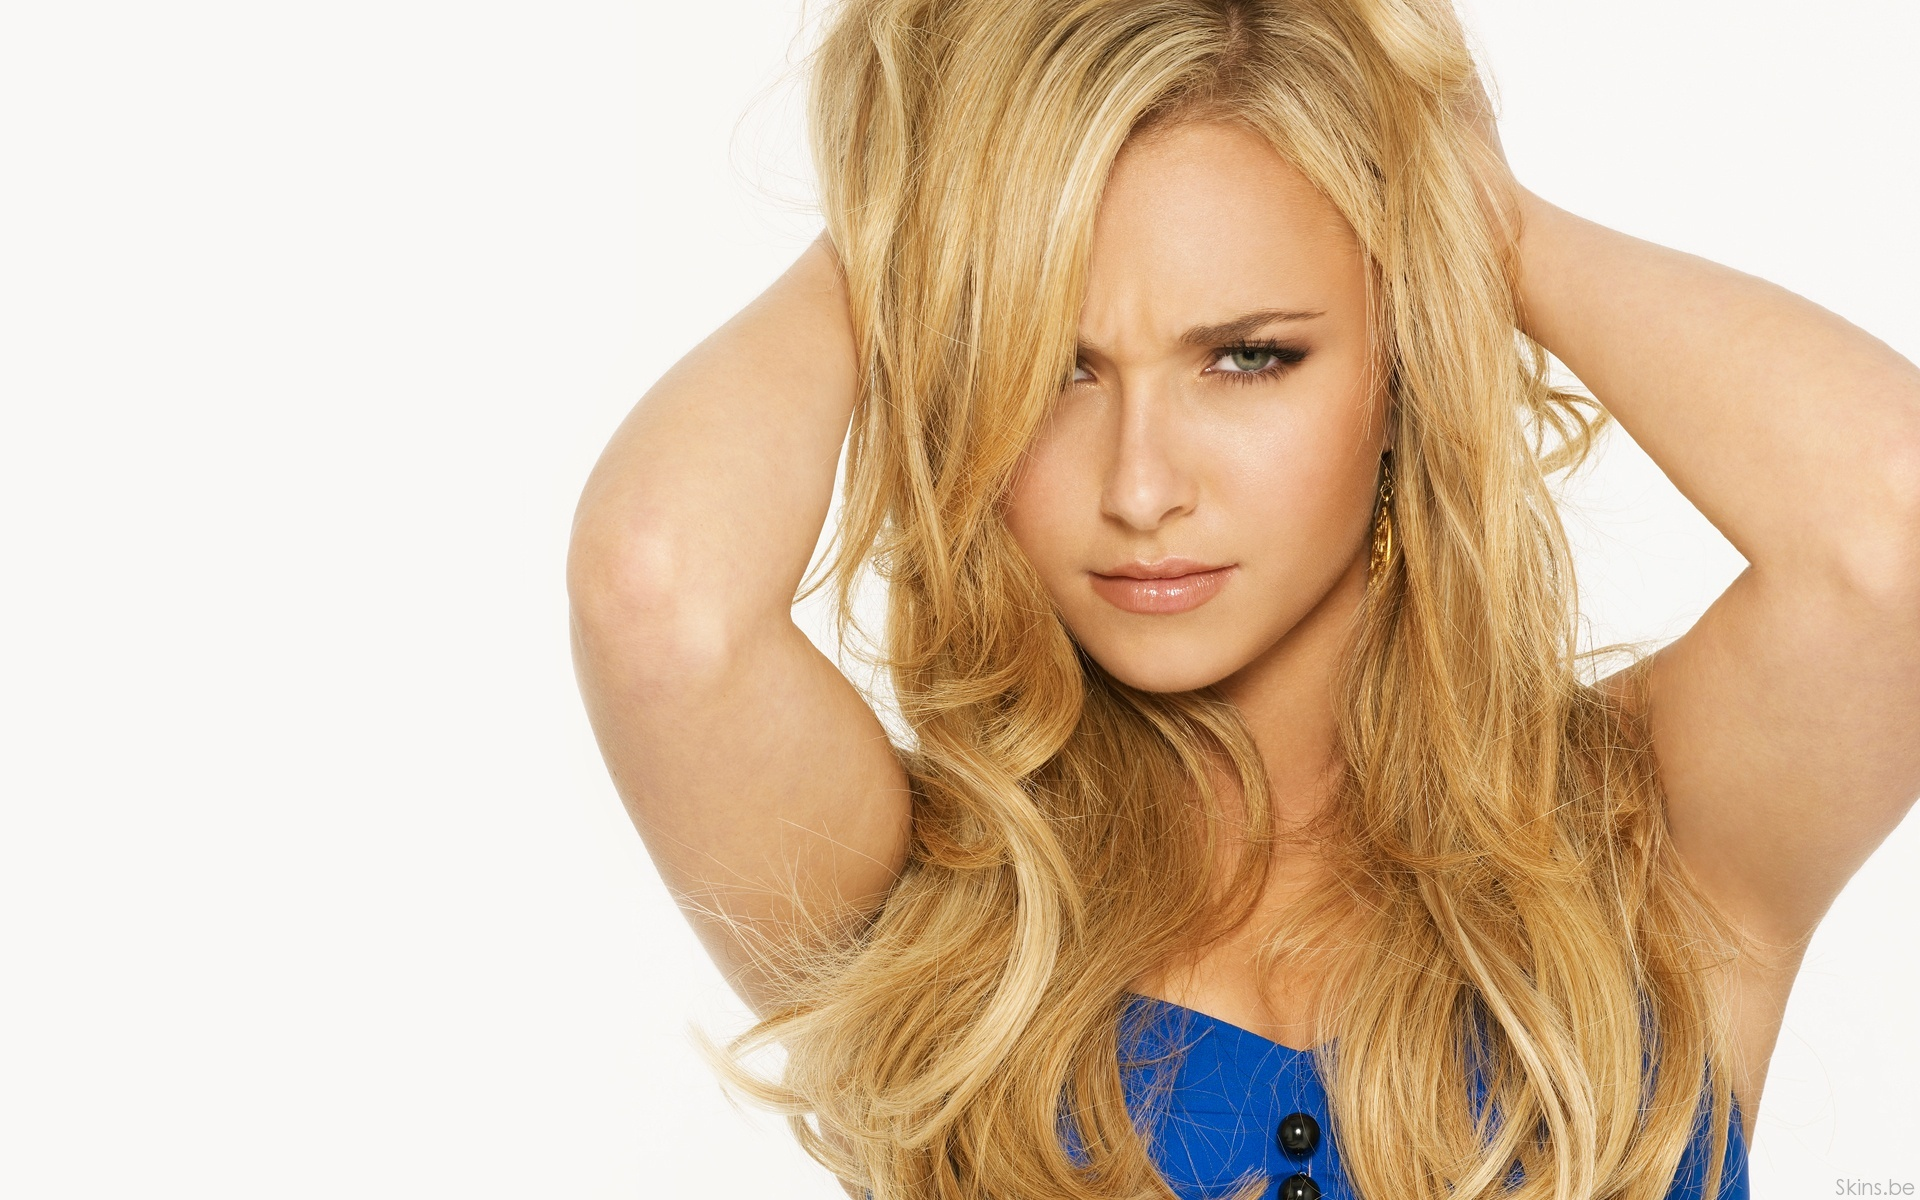 haydenpanettiere wallpapers hd A3